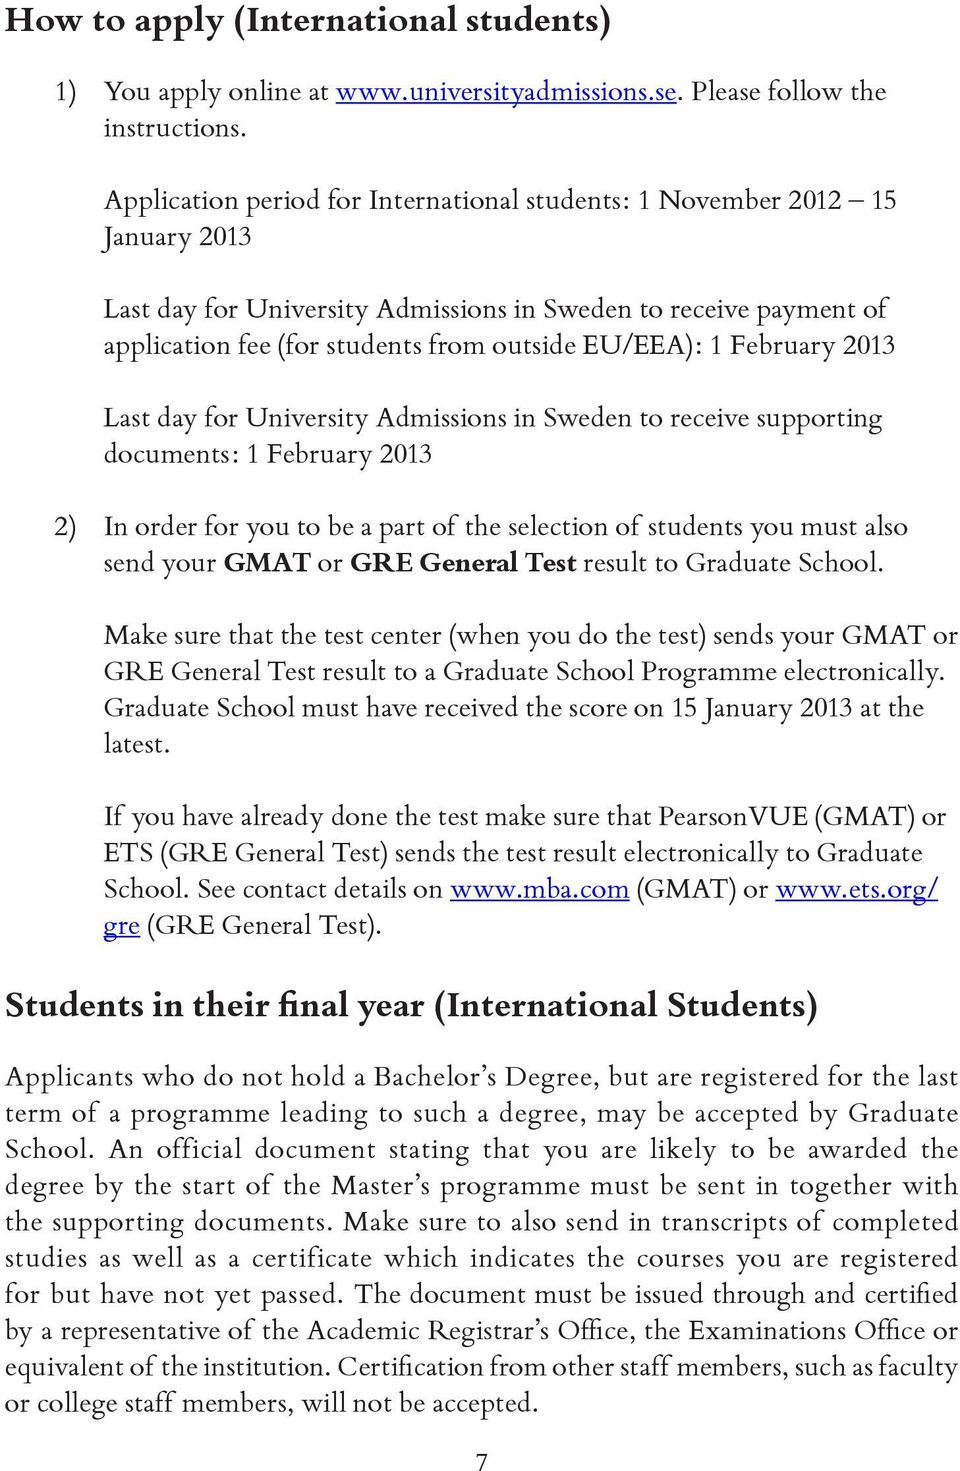 February 2013 Last day for University Admissions in Sweden to receive supporting documents: 1 February 2013 2) In order for you to be a part of the selection of students you must also send your GMAT